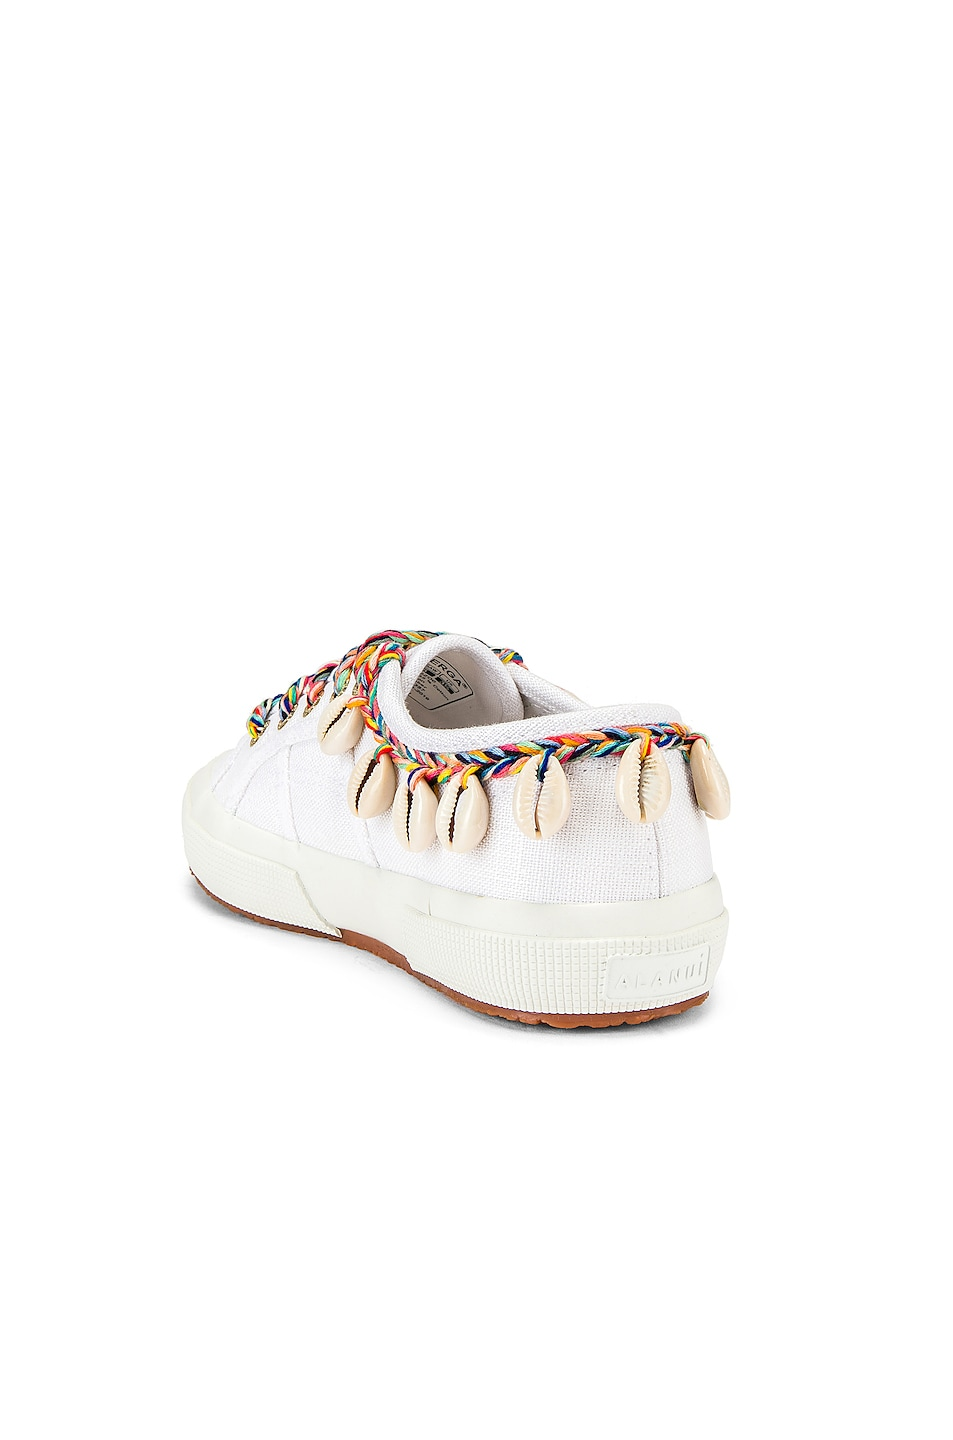 Image 3 of ALANUI x SUPERGA Low Top Cowrie Shells Sneaker in White Multi